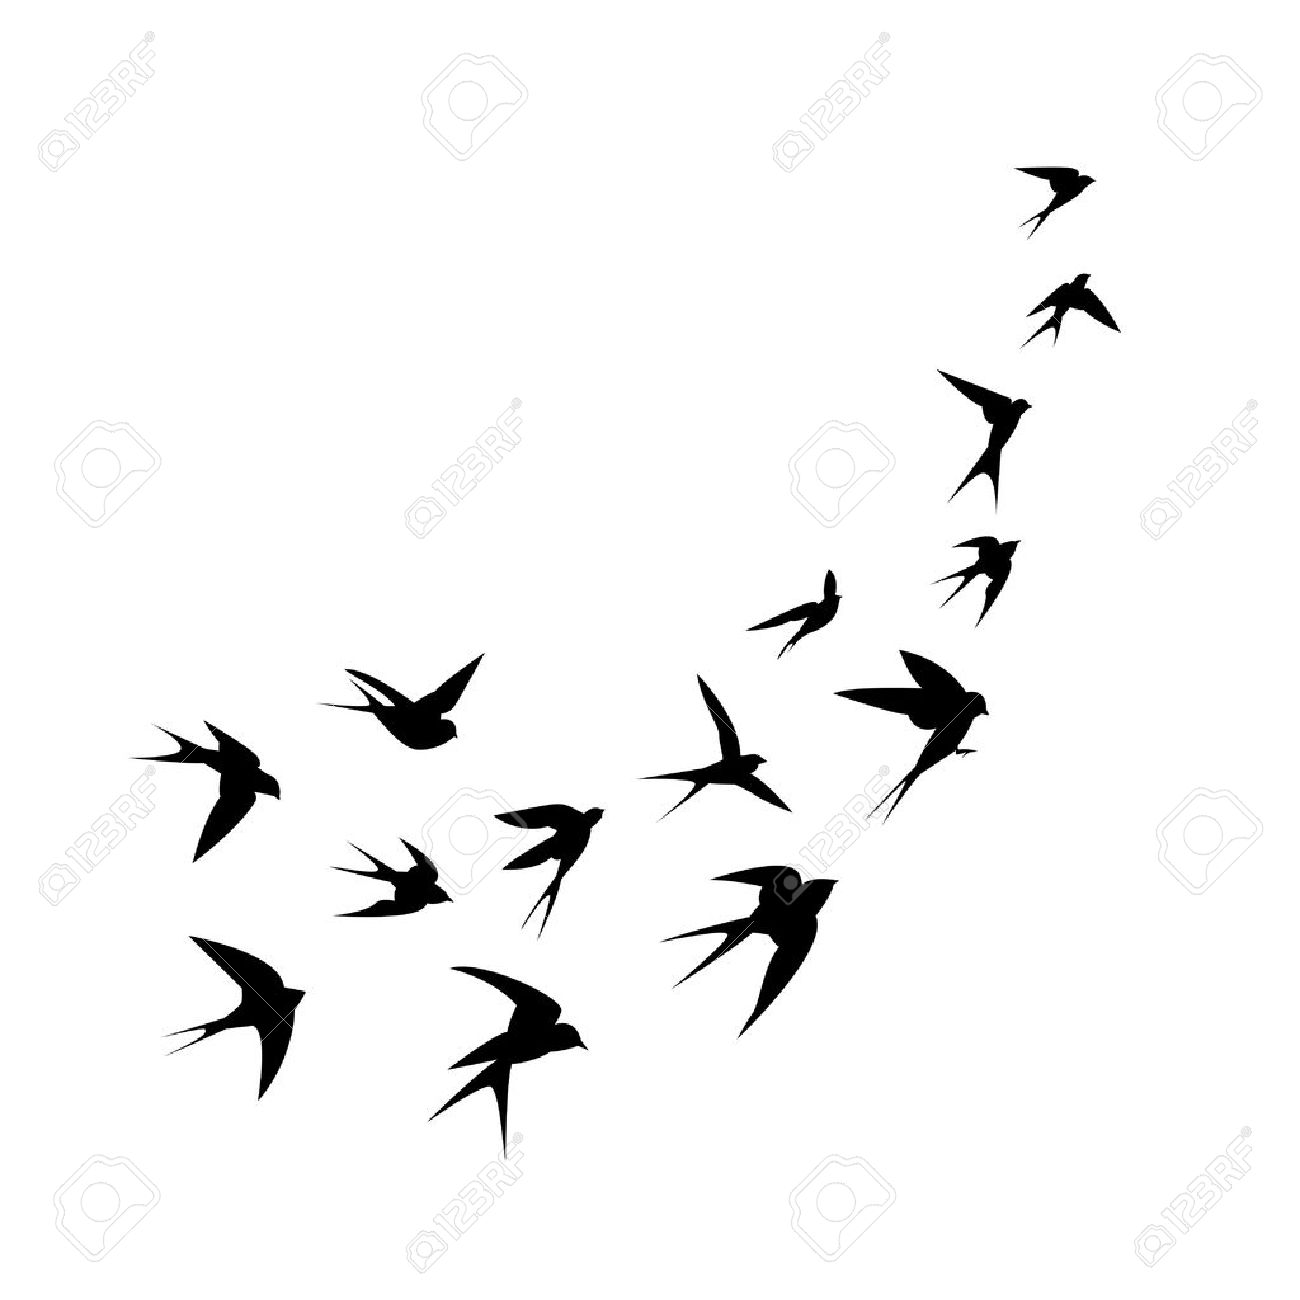 A flock of birds swallows go up. Black silhouette on a white background. Vector illustration. - 43470491